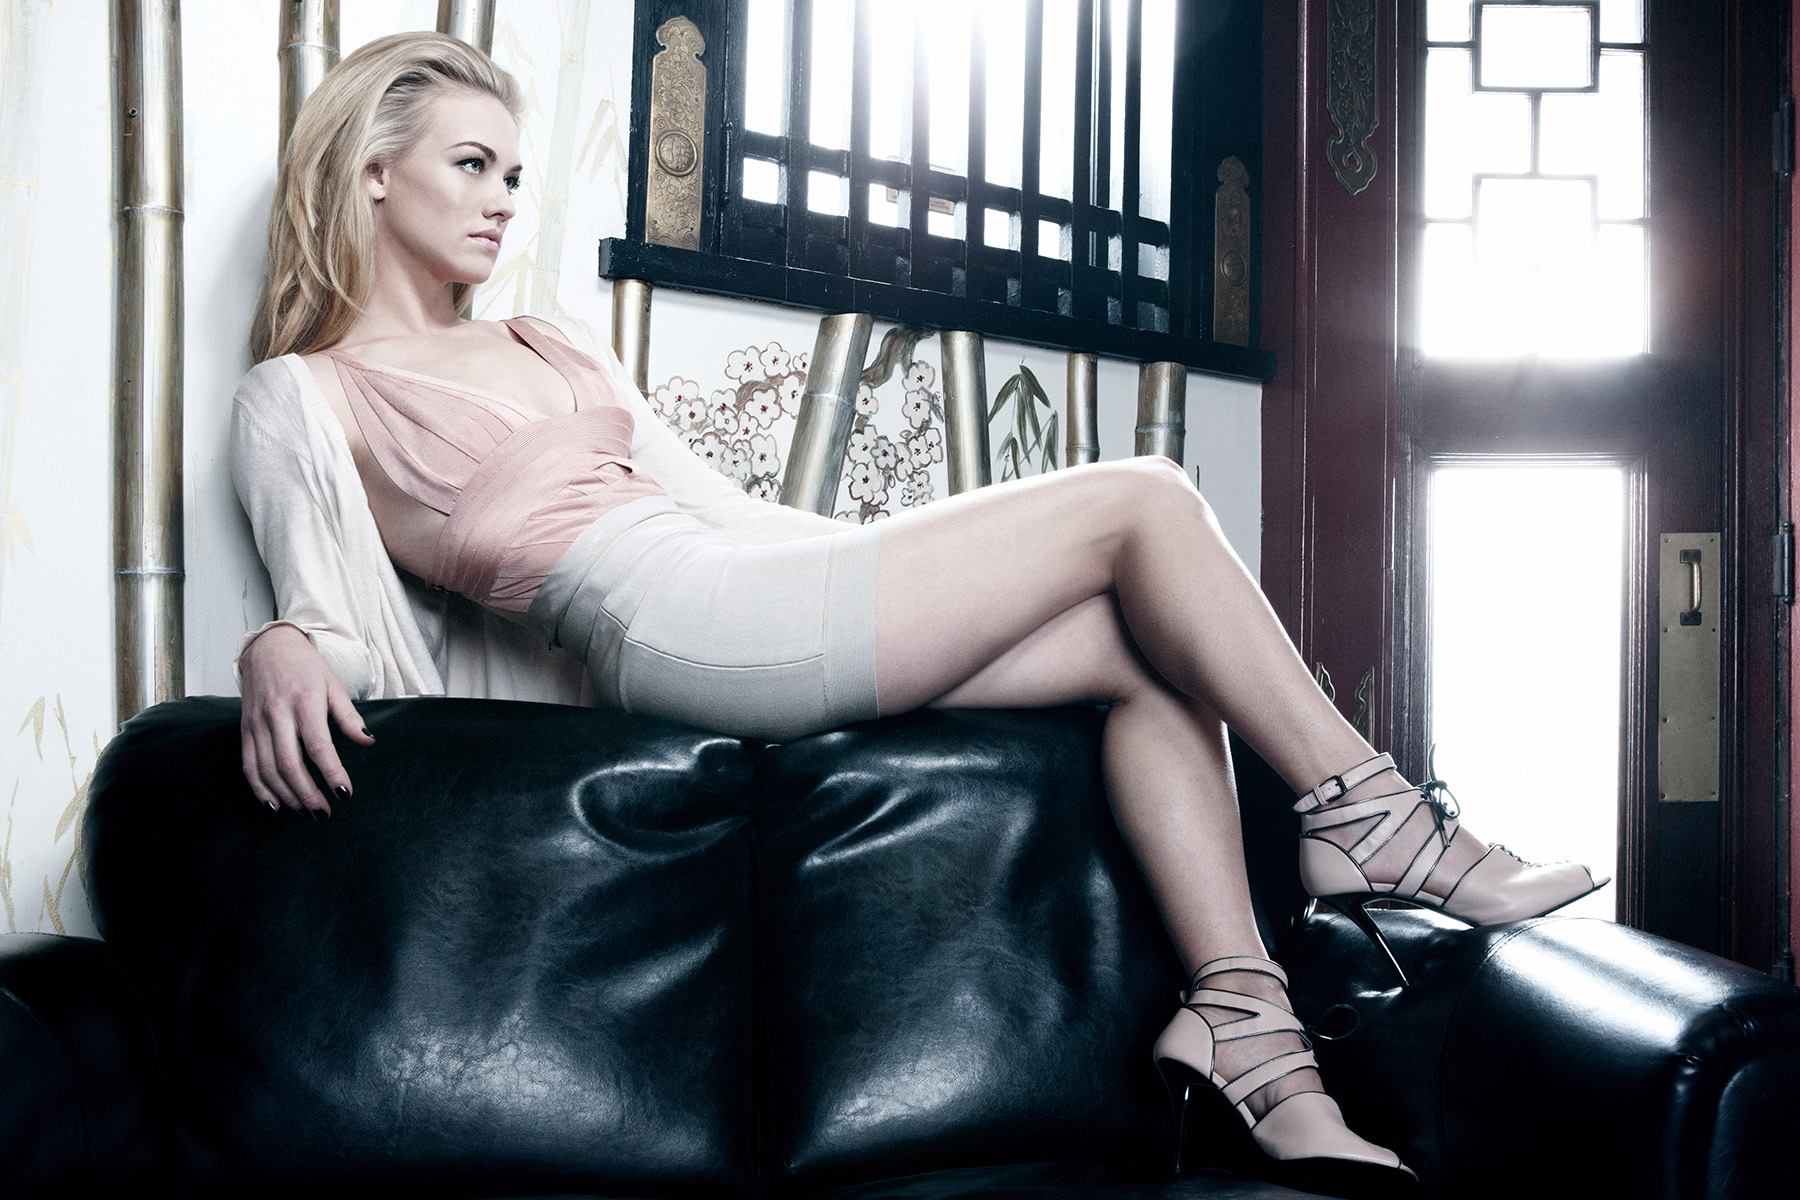 Actress Yvonne Strahovski photographed by Scott Council